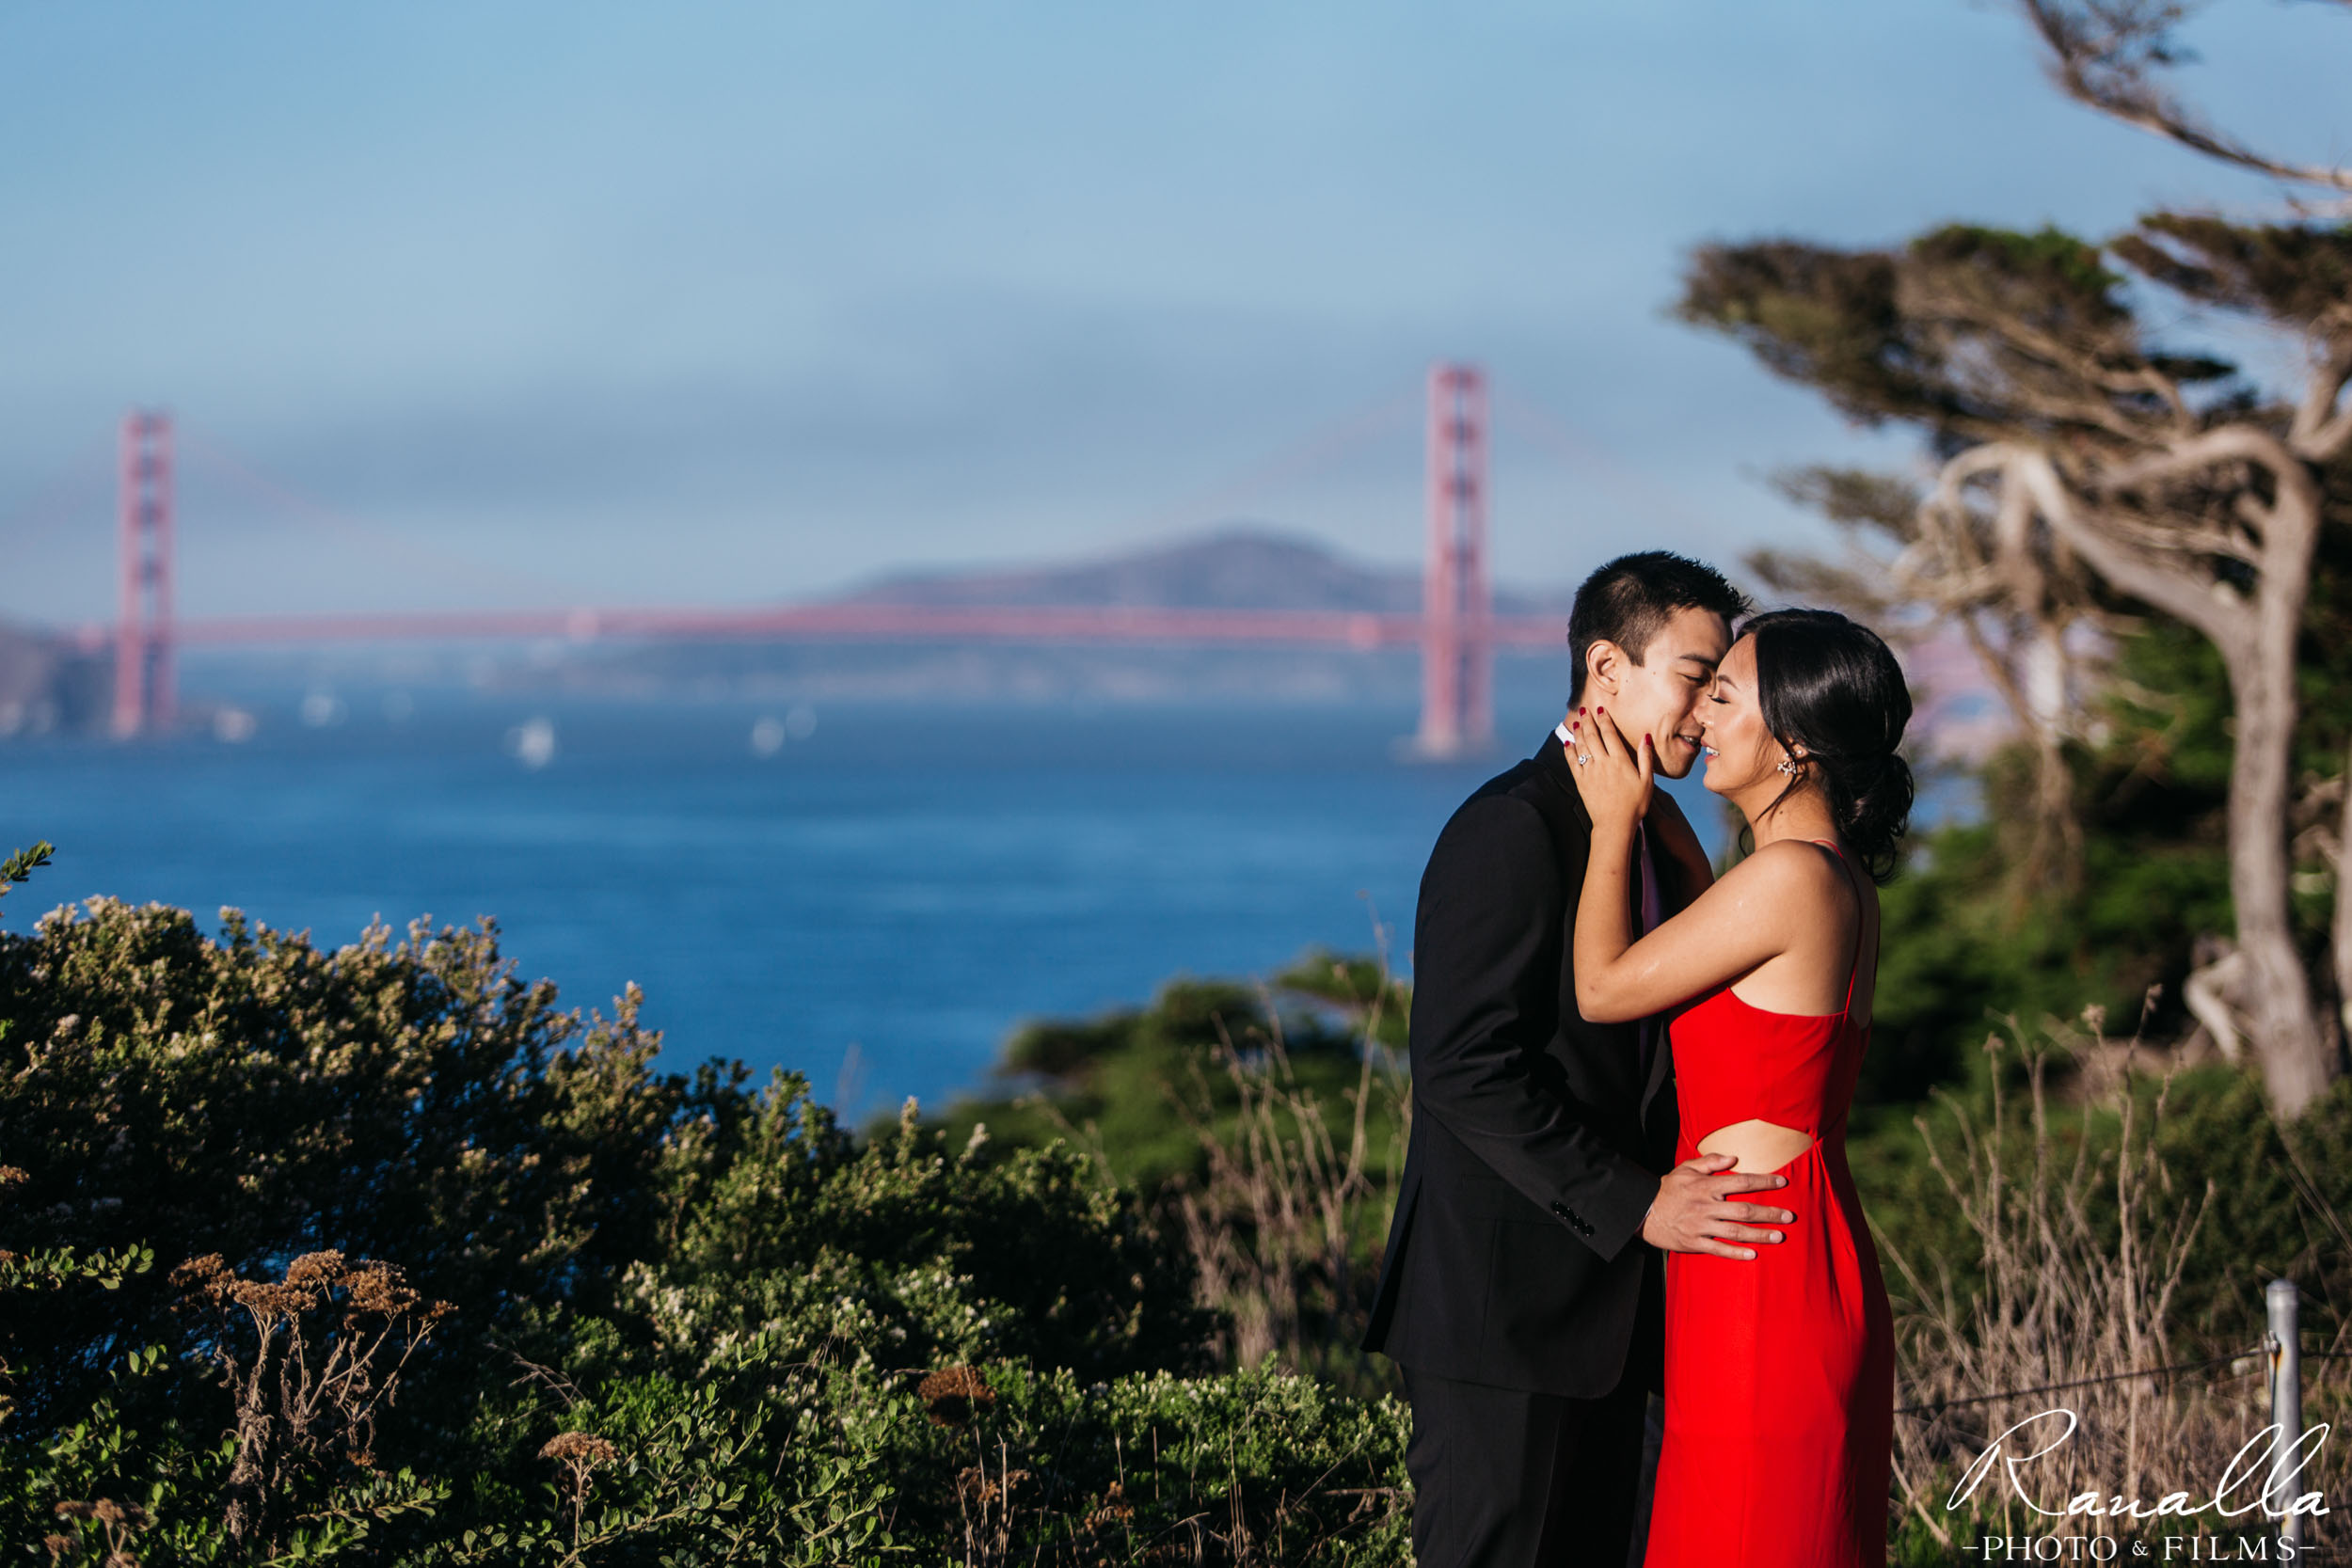 San Francisco Engagement Photography- Golden Gate Bridge- Red Maxi Dress- Palace of Fine Arts- Wedding Photos- Ranalla Photo & Films